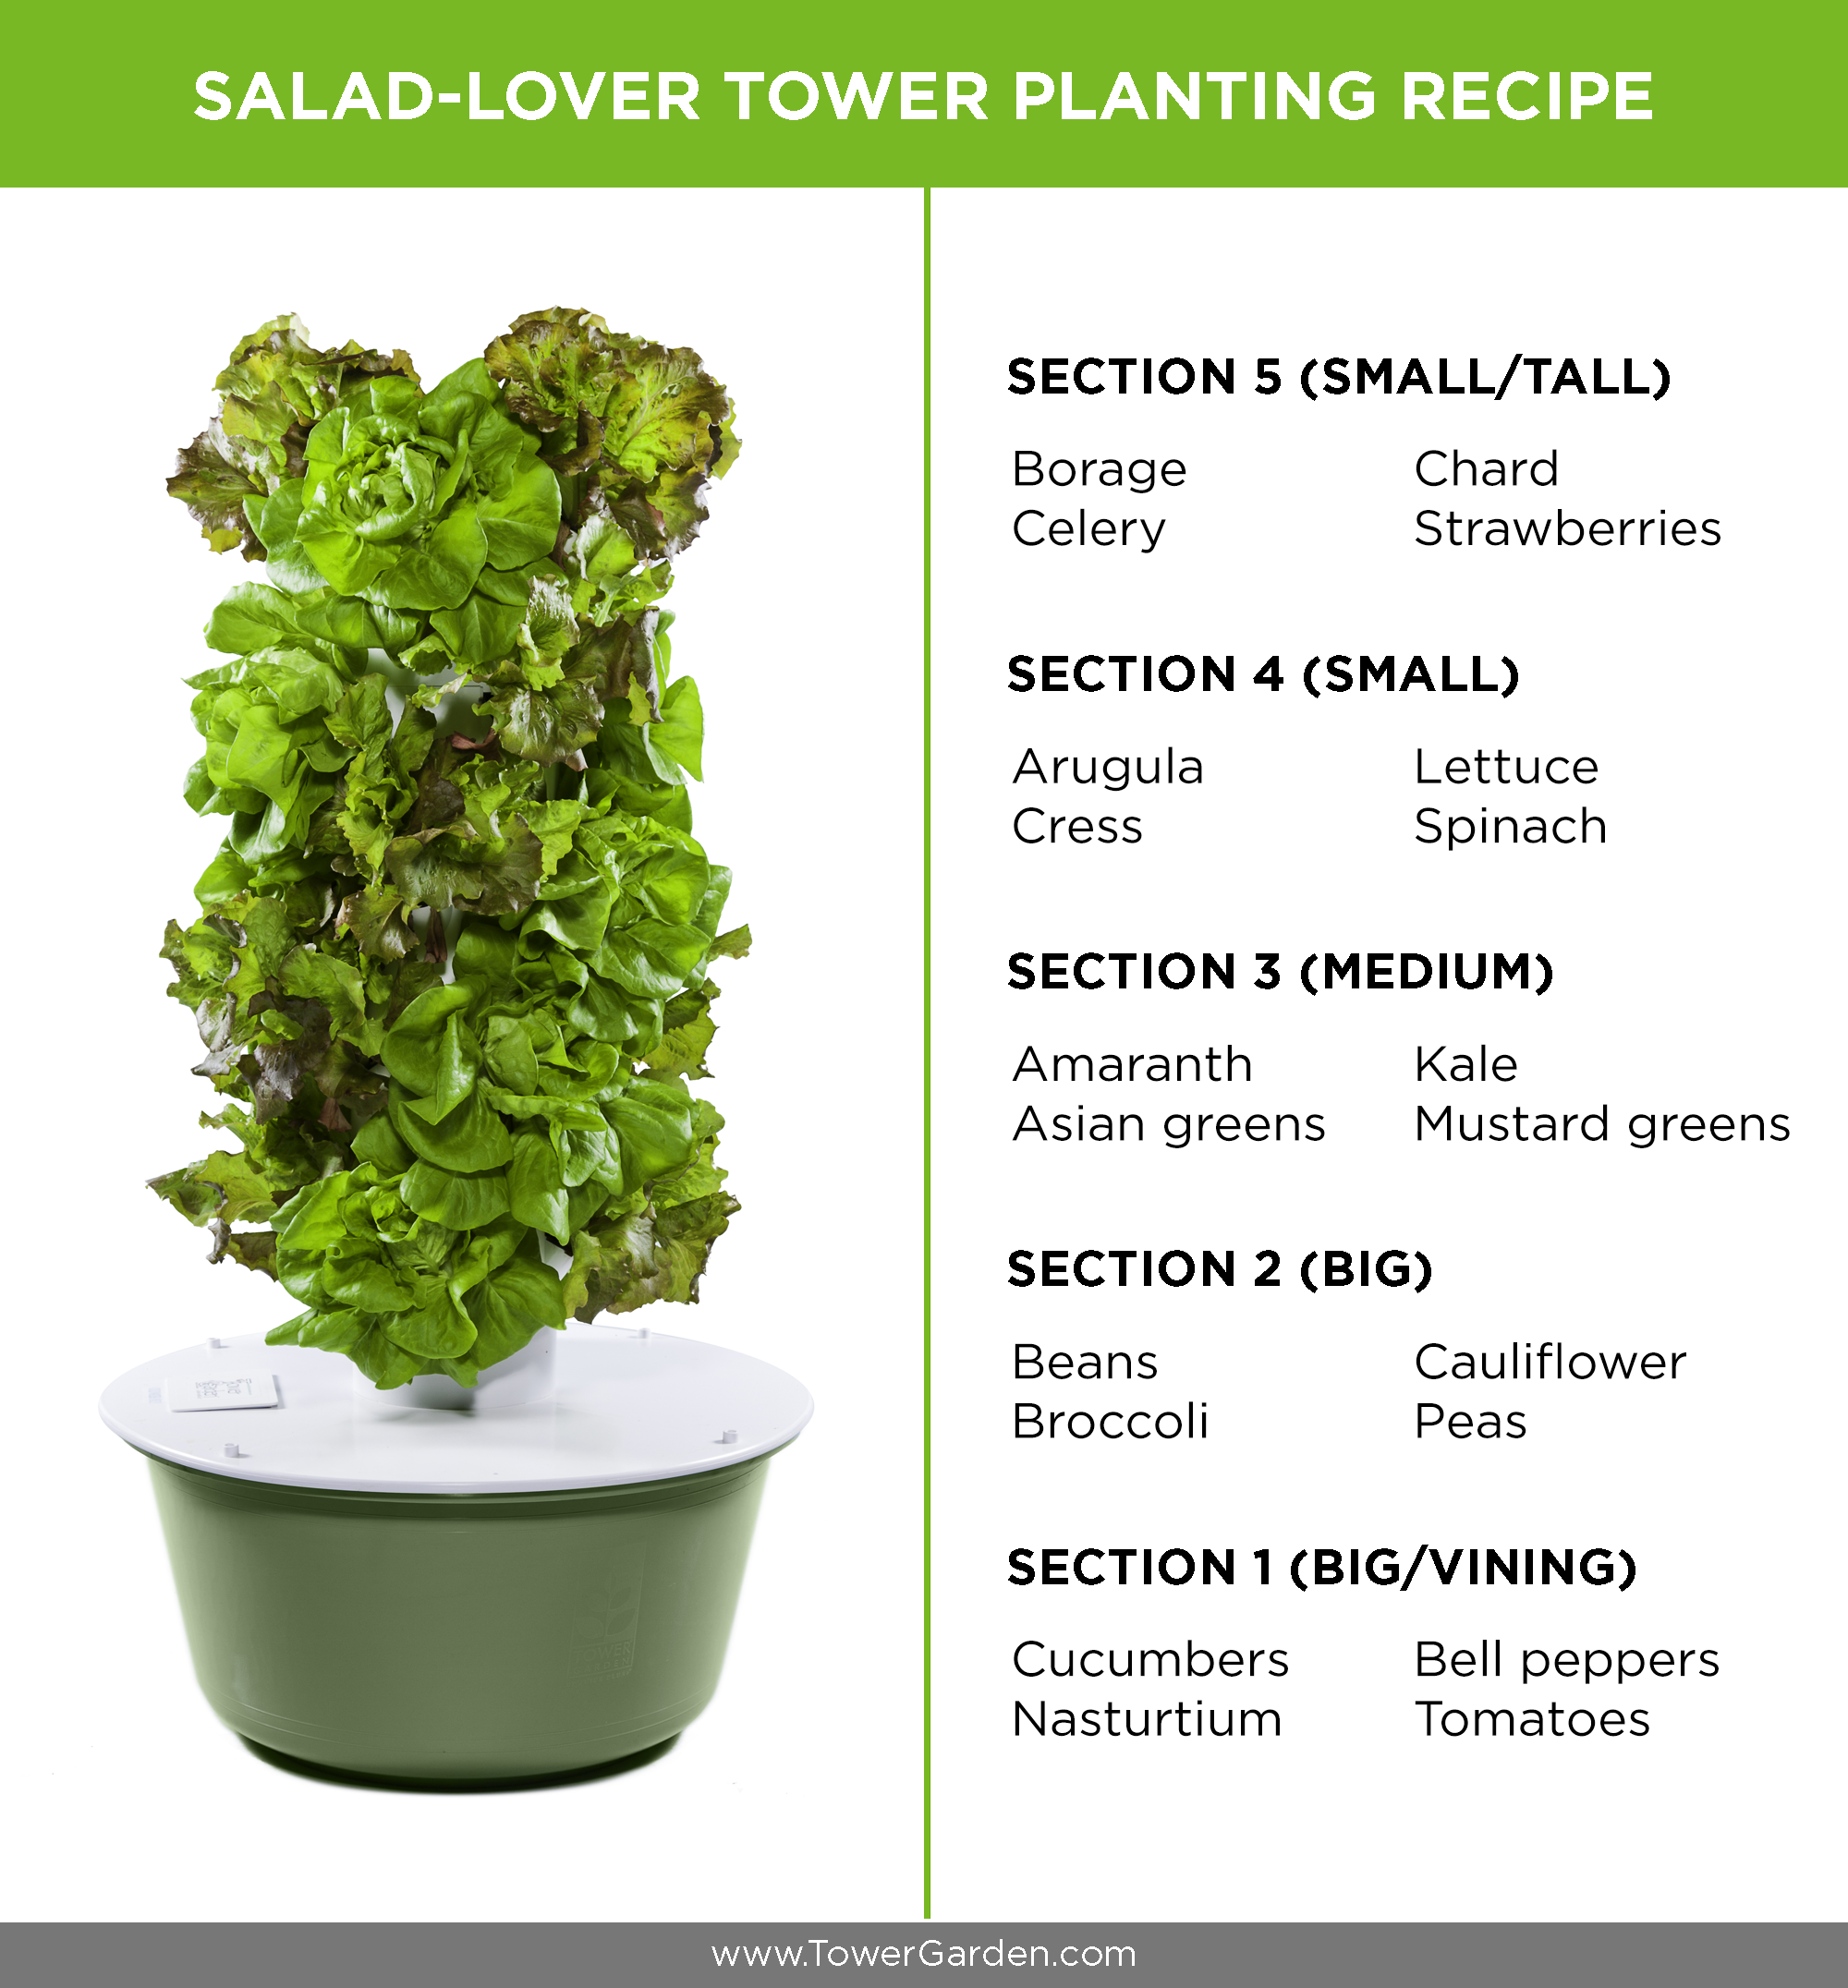 How To Arrange A Salad Lover Tower Garden